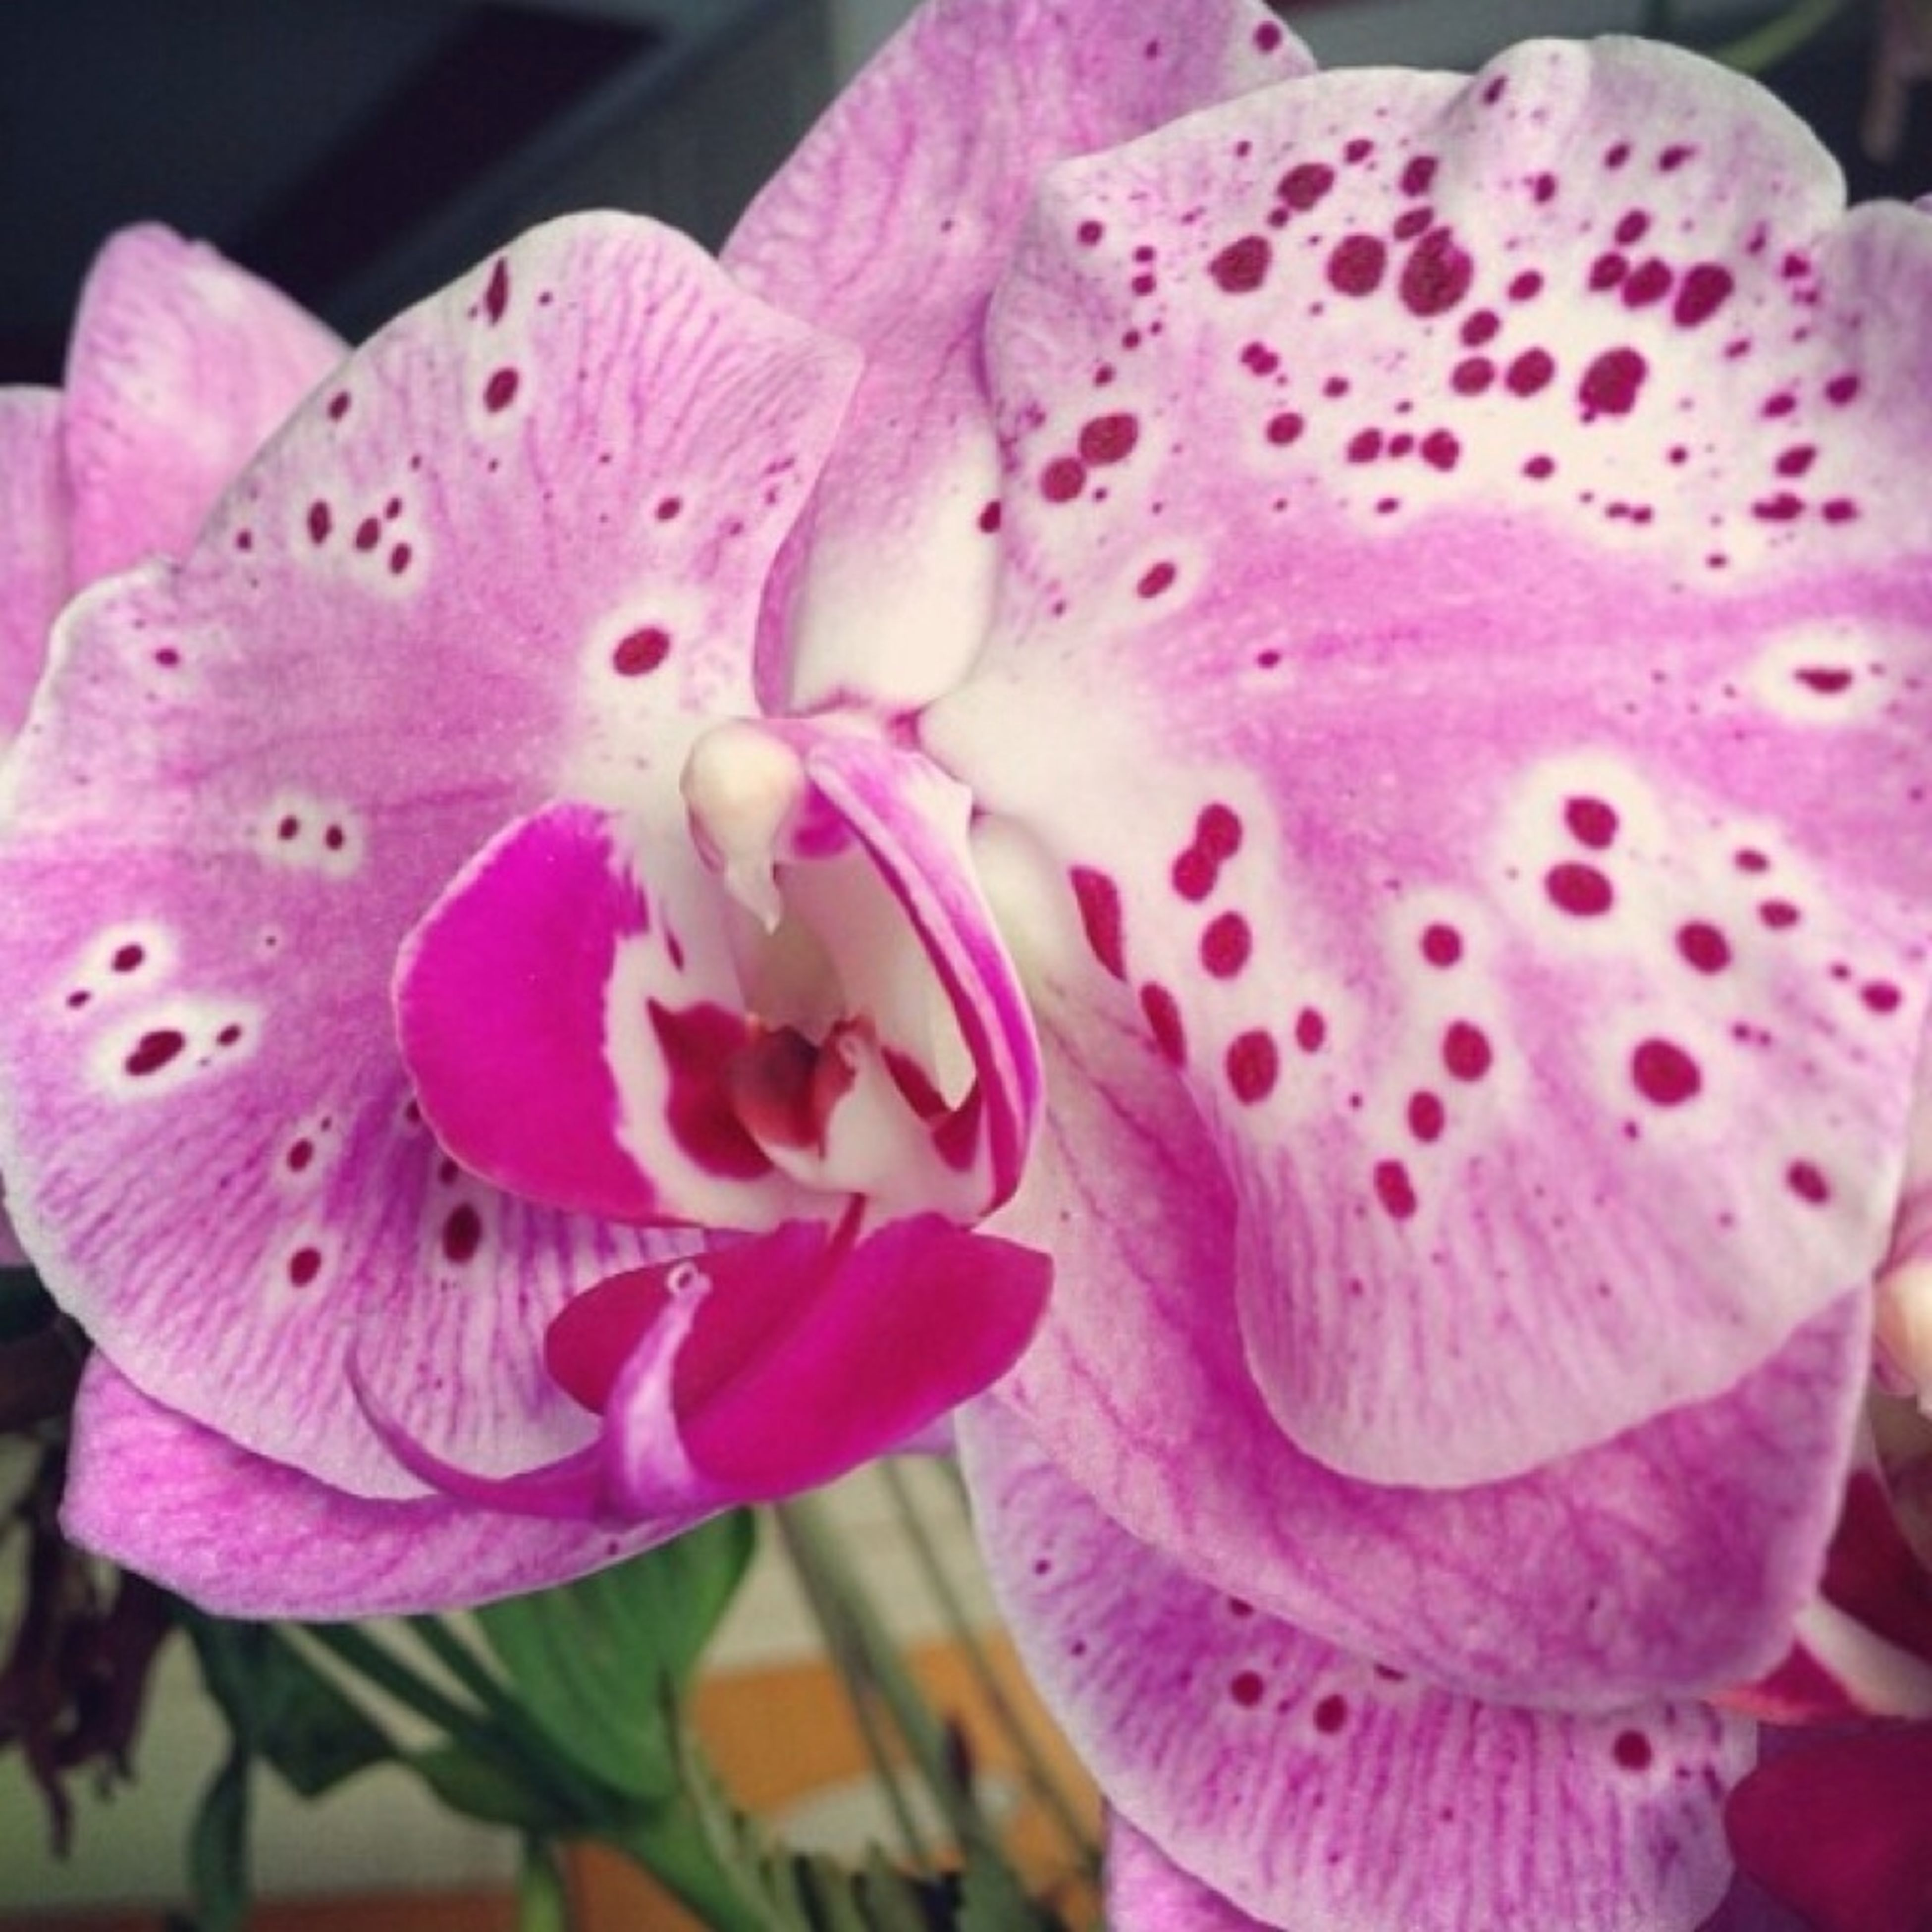 flower, petal, freshness, flower head, fragility, close-up, pink color, beauty in nature, nature, growth, blooming, pink, focus on foreground, no people, single flower, natural pattern, orchid, in bloom, pollen, day